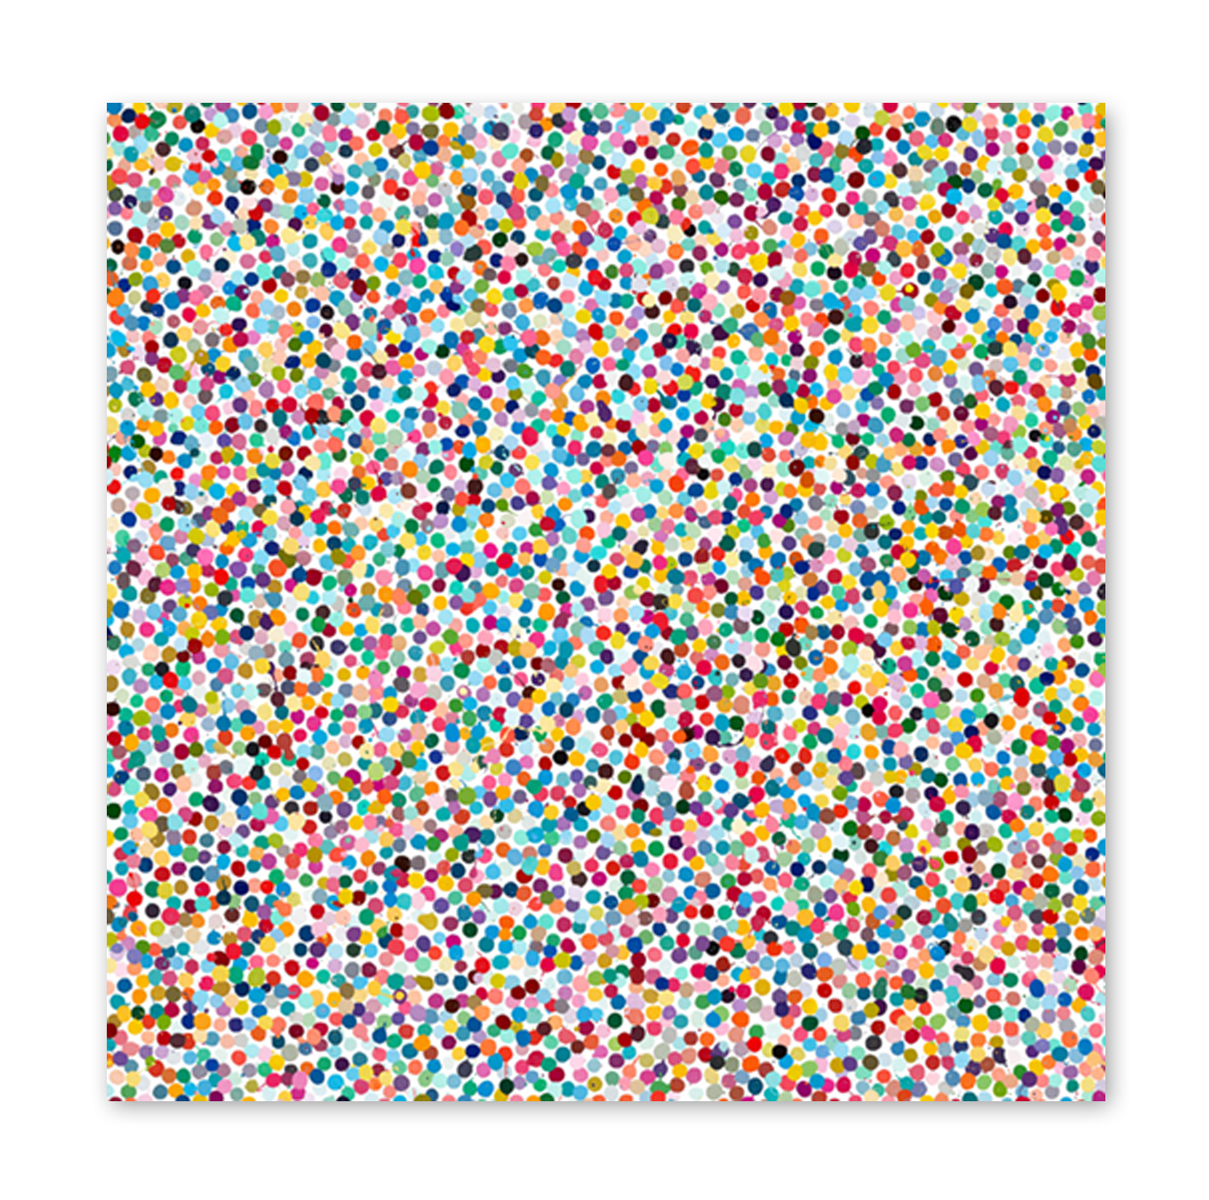 Beverly Hills (h5-2) by Damien Hirst